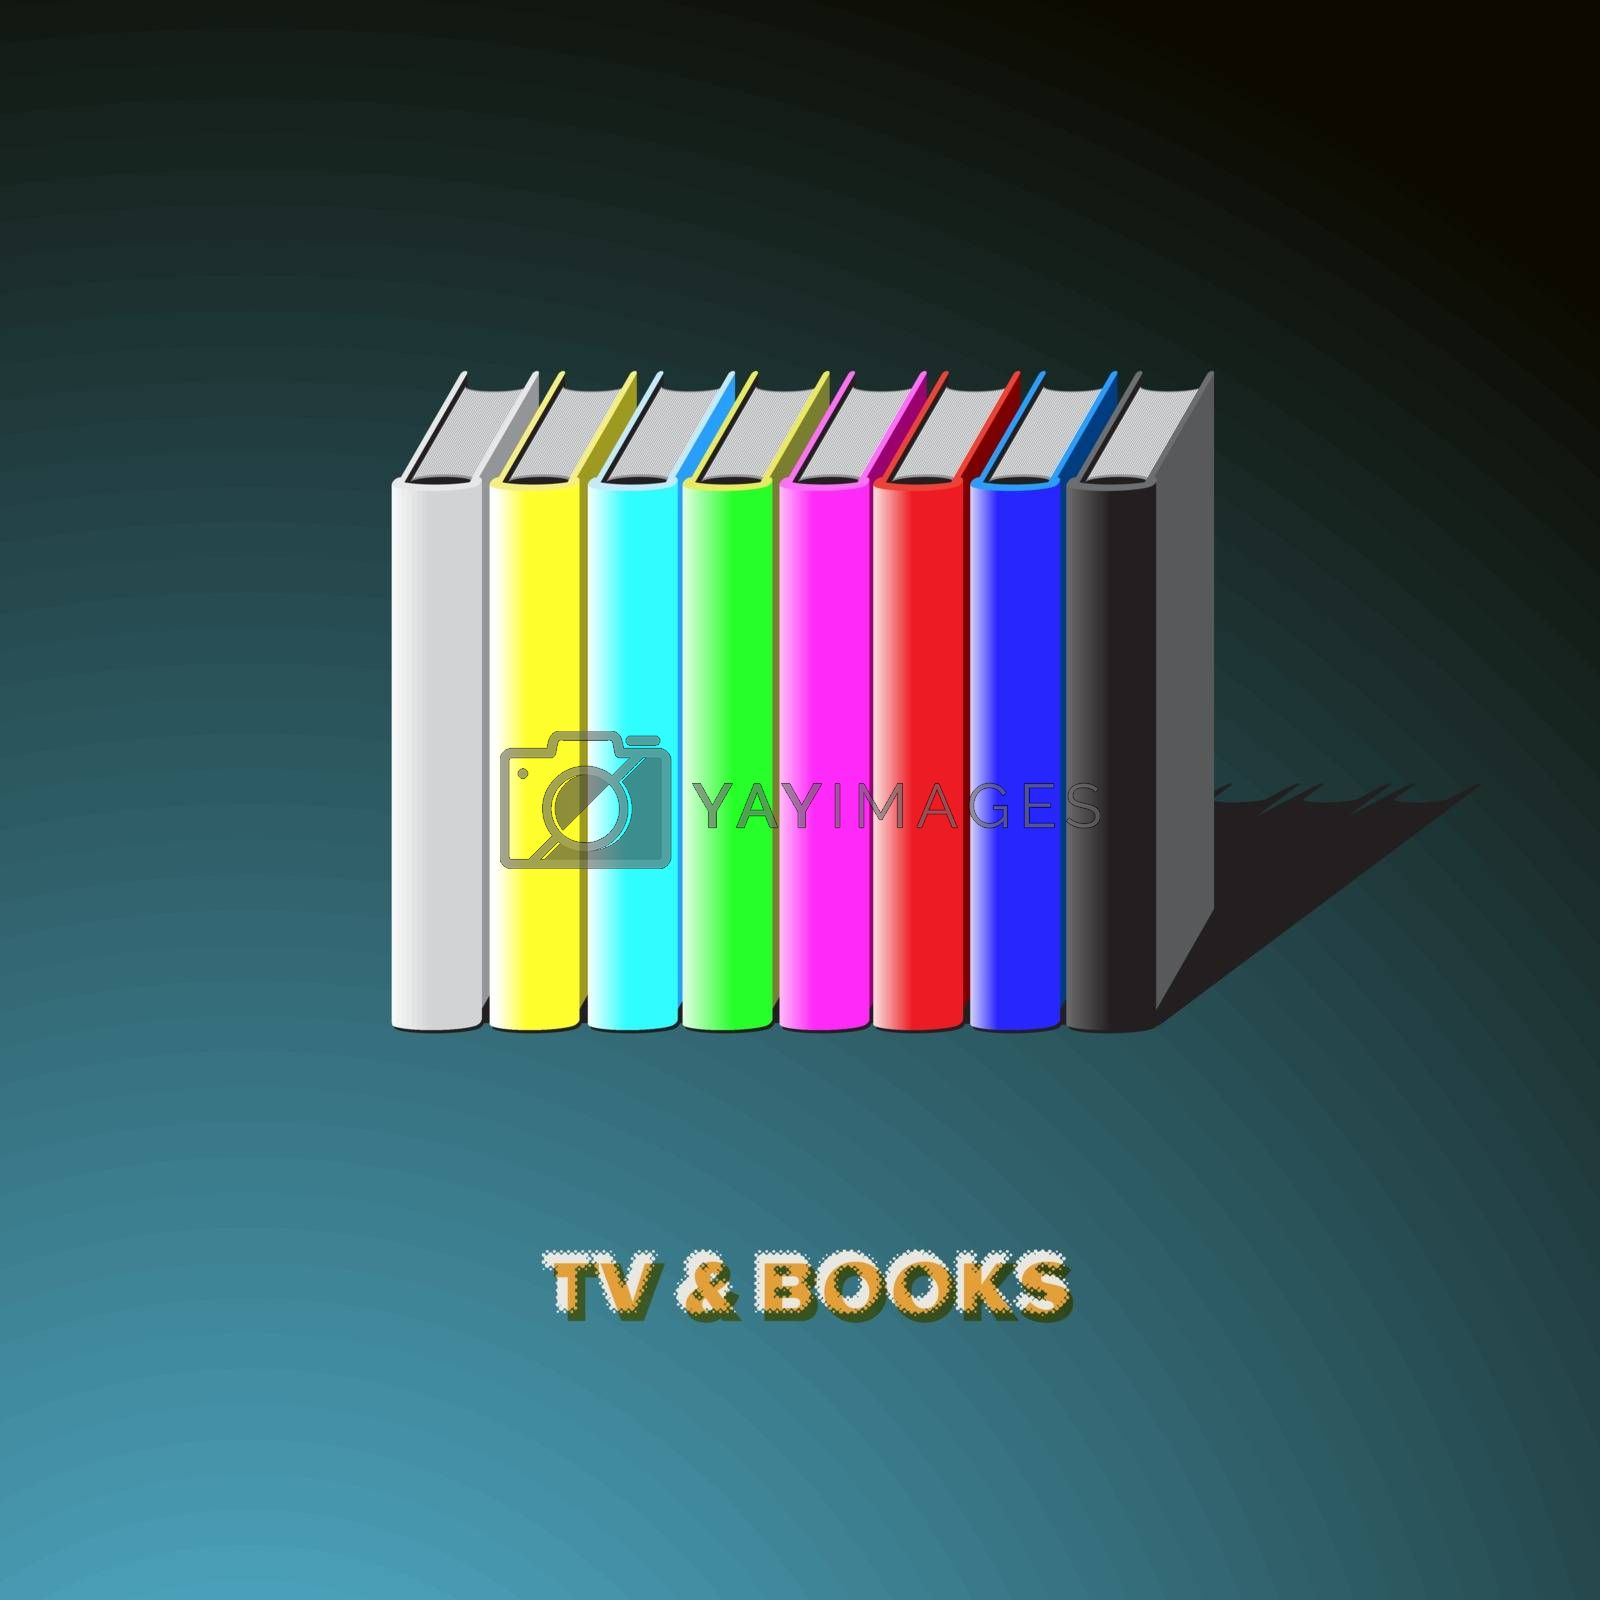 Royalty free image of Row of books made tv-colorful no signal background by ikopylov